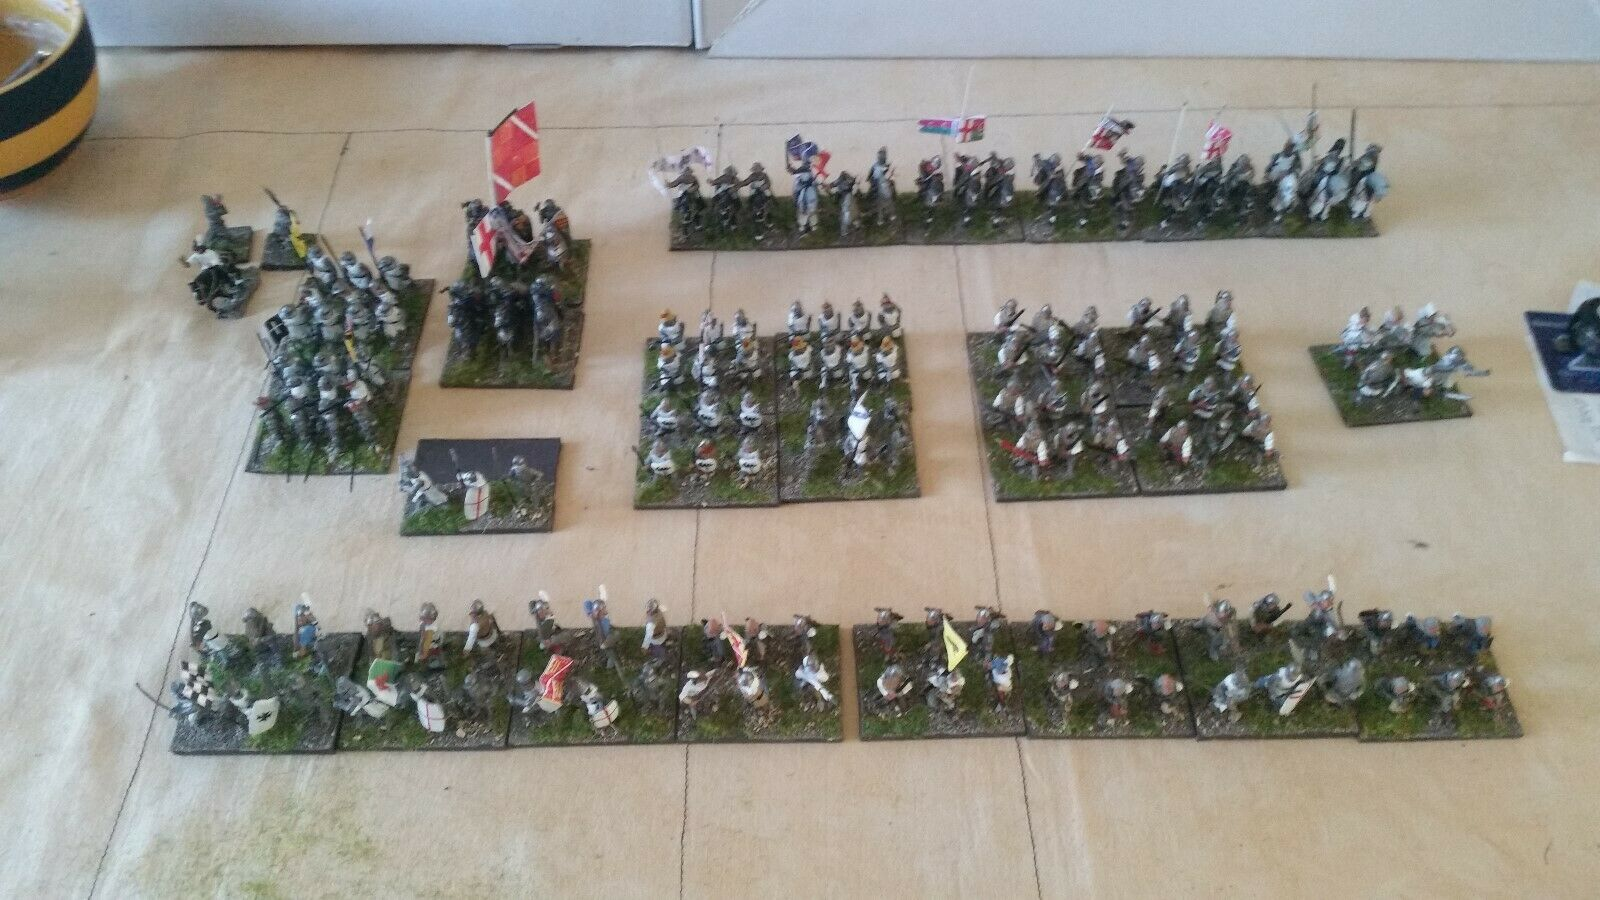 25   28 MM ,L'ART DE LA GUERRE 100YEARS pinkS ARMY PIANTED AND BASED CAN B DBMM